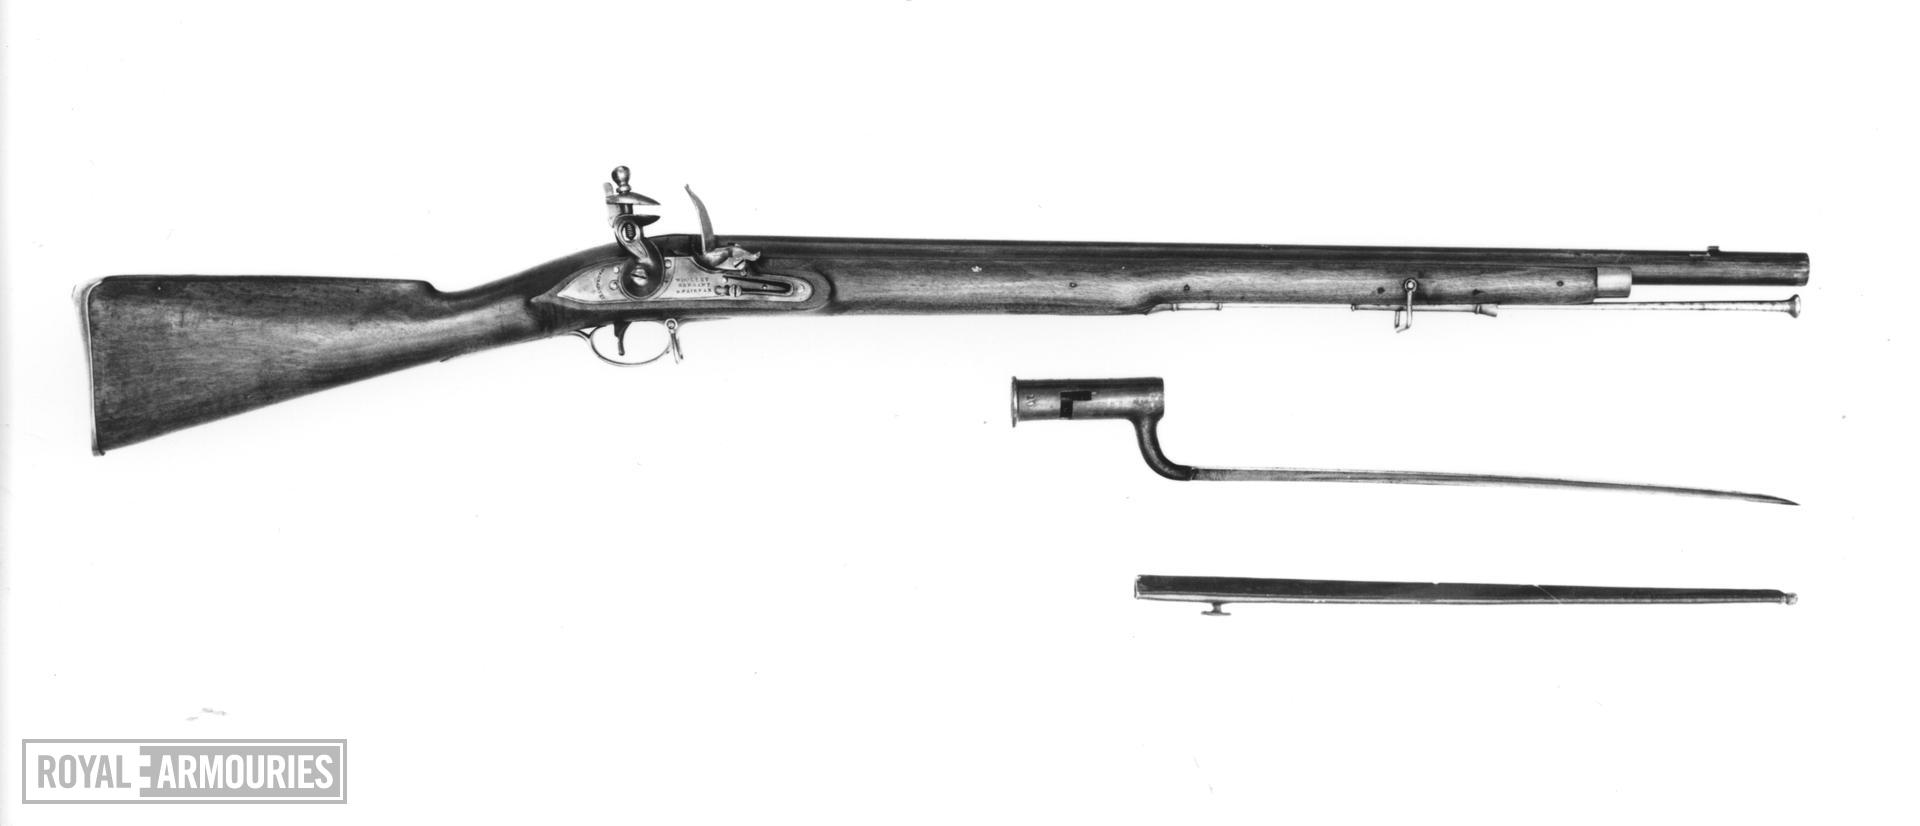 Flintlock muzzle-loading carbine - By Woolley, Sargant and Fairfax